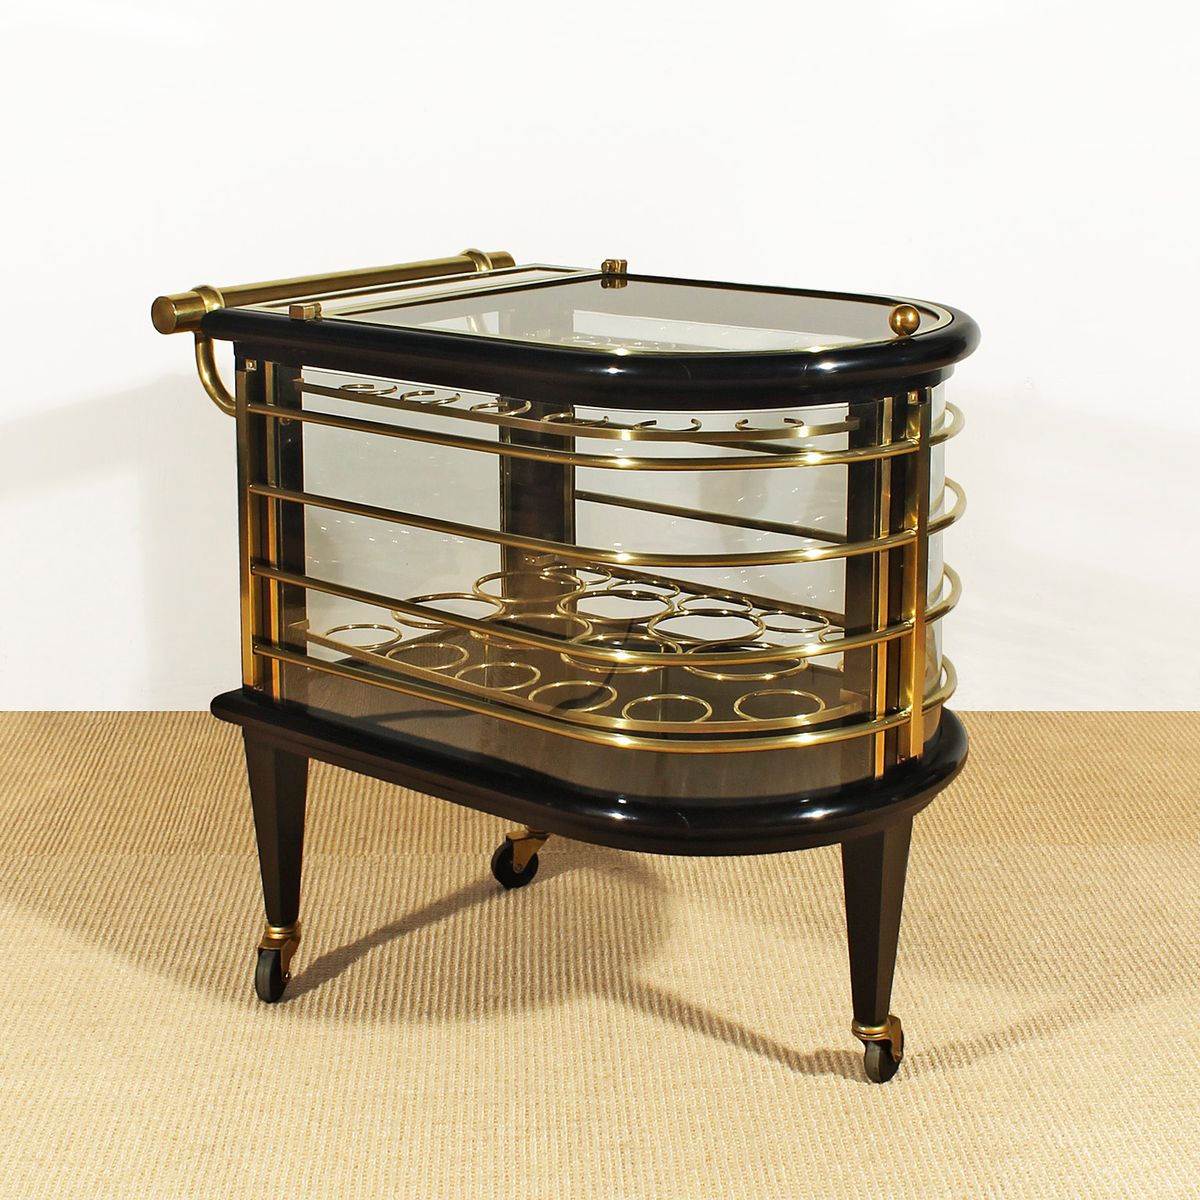 French art deco dry bar trolley 1930s for sale at pamono for Meuble art deco 1930